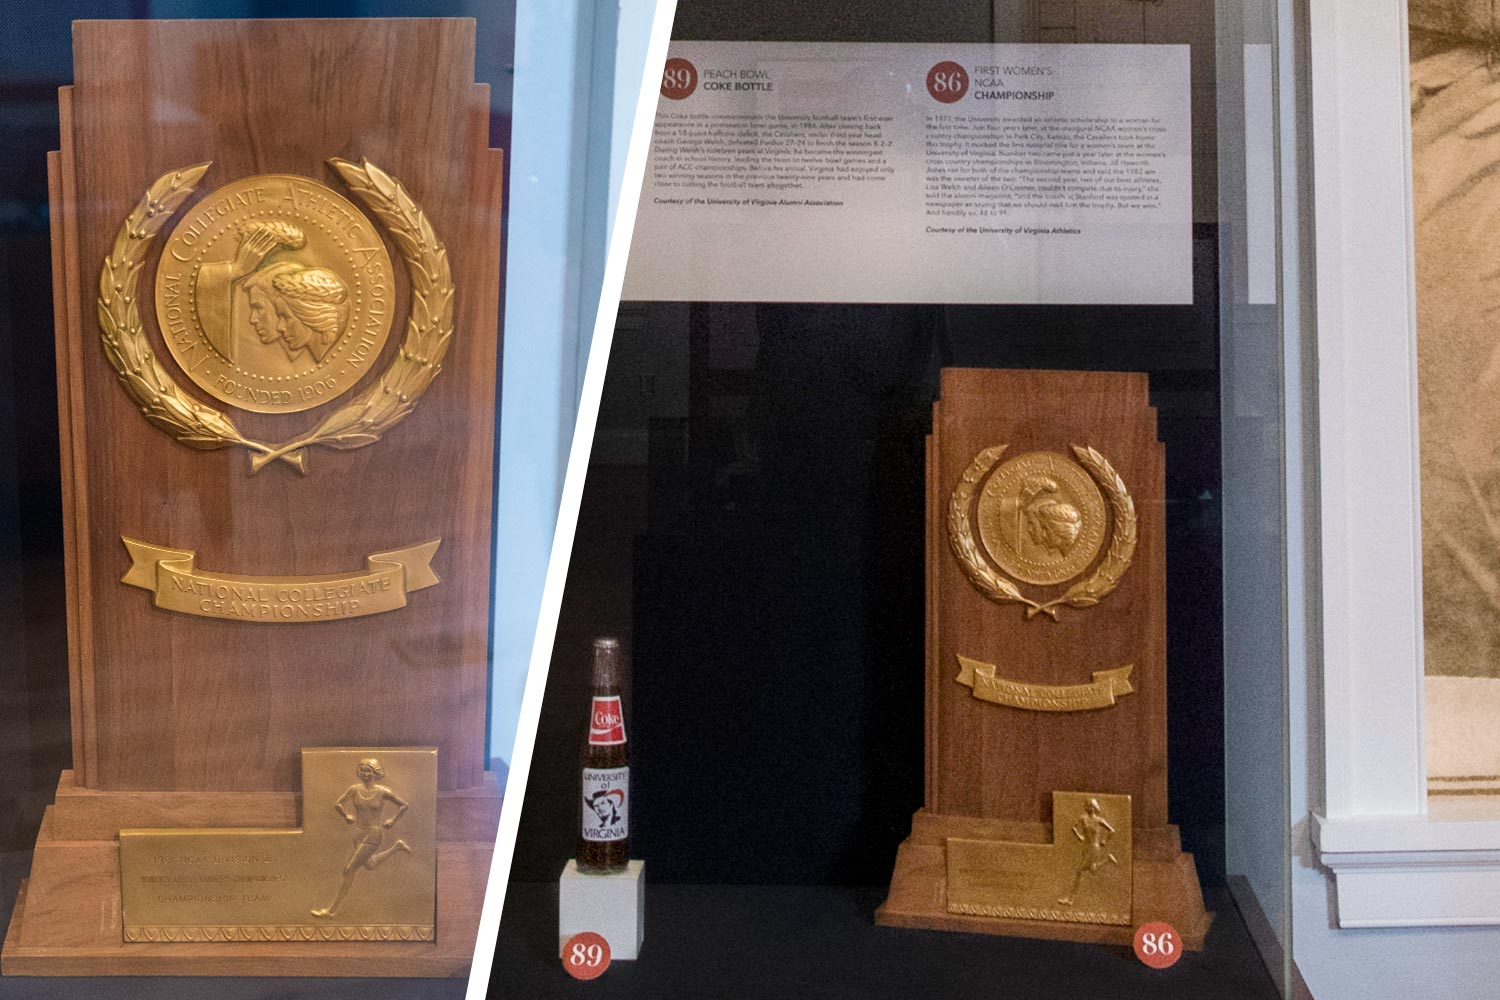 A trophy in a display case